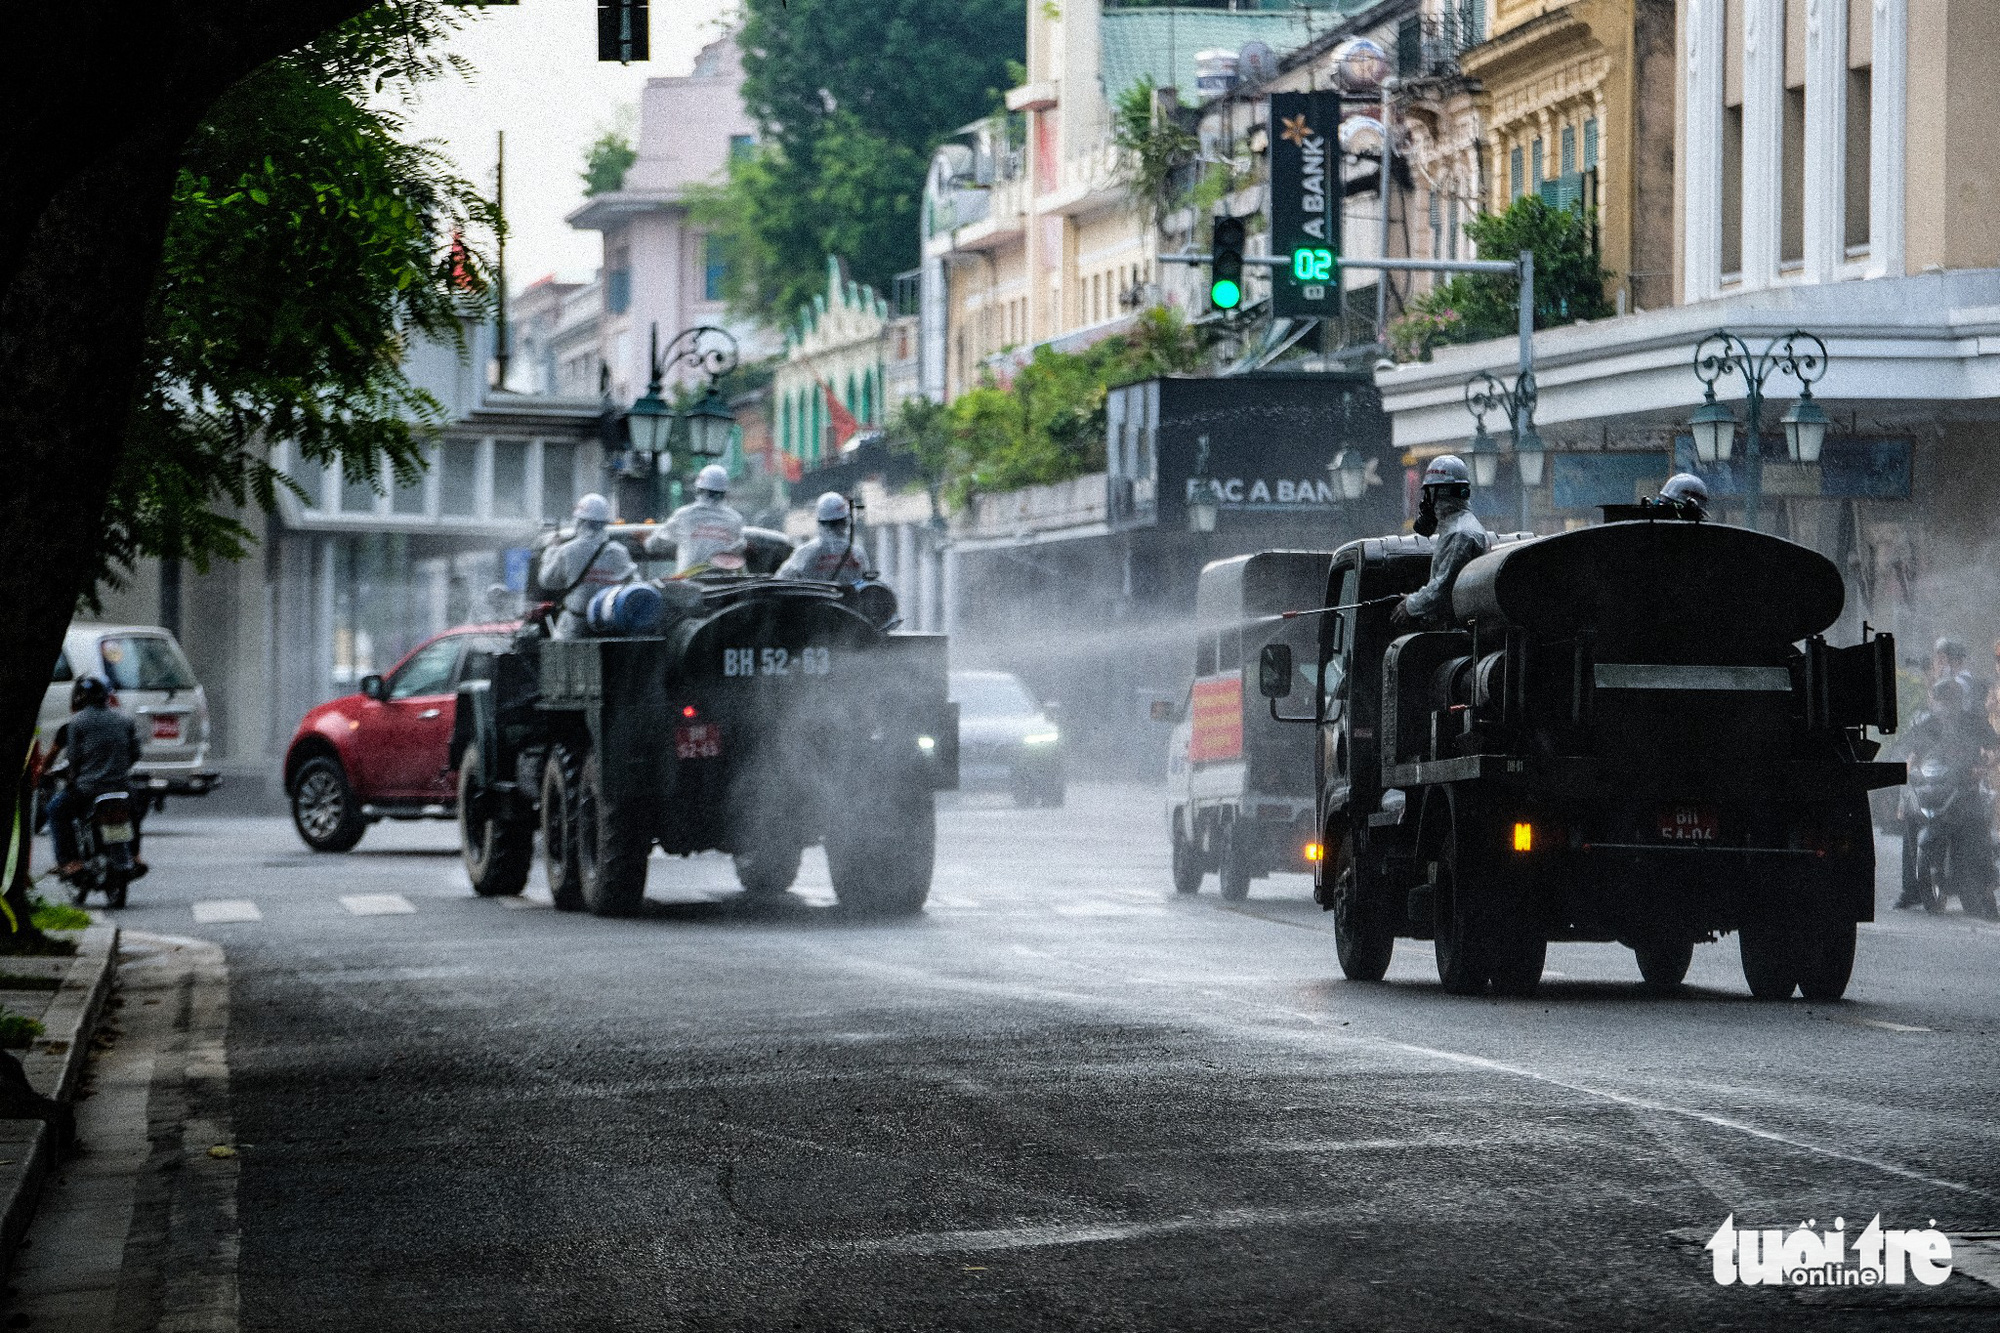 This image shows specialized vehicles spraying chemicals to disinfect a street in Hoan Kiem District, Hanoi, July 26, 2021. Photo: Nam Tran / Tuoi Tre